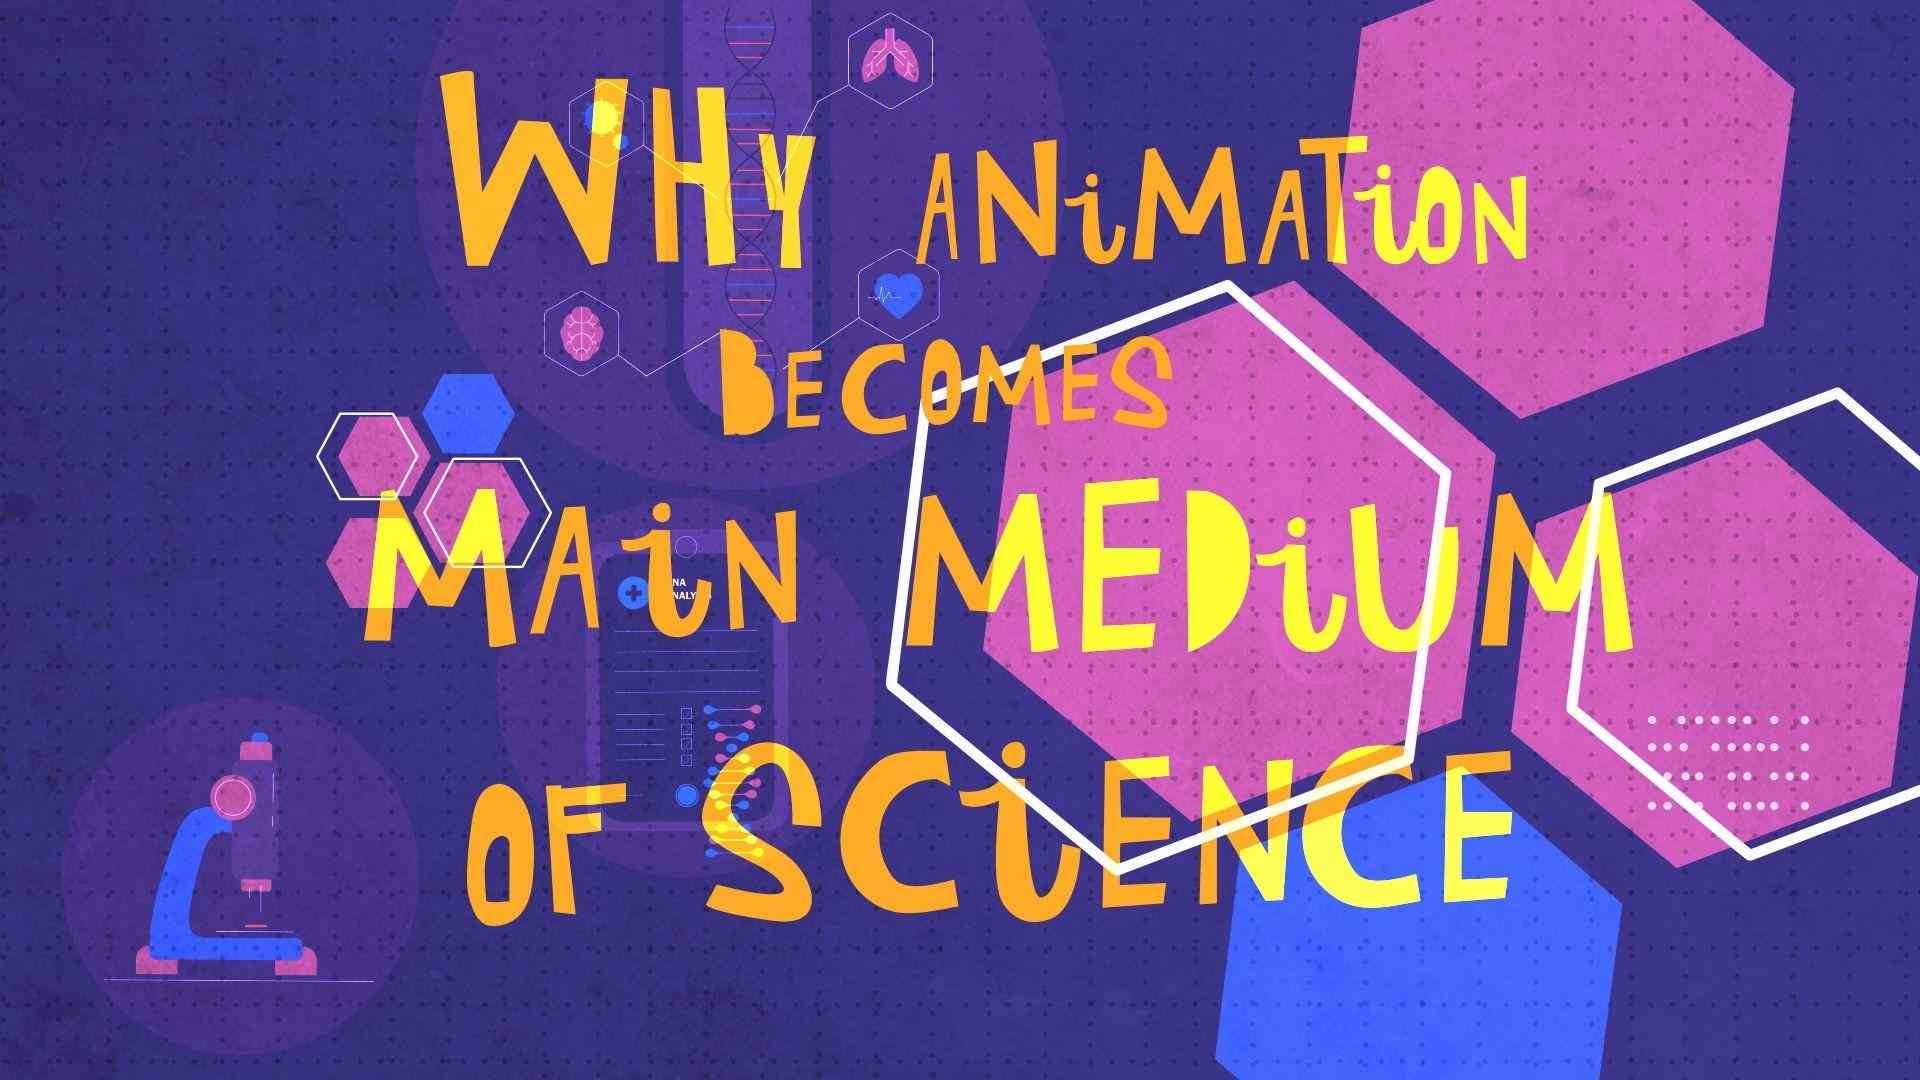 Whe animation has become the main medium of science? | Darvideo blog